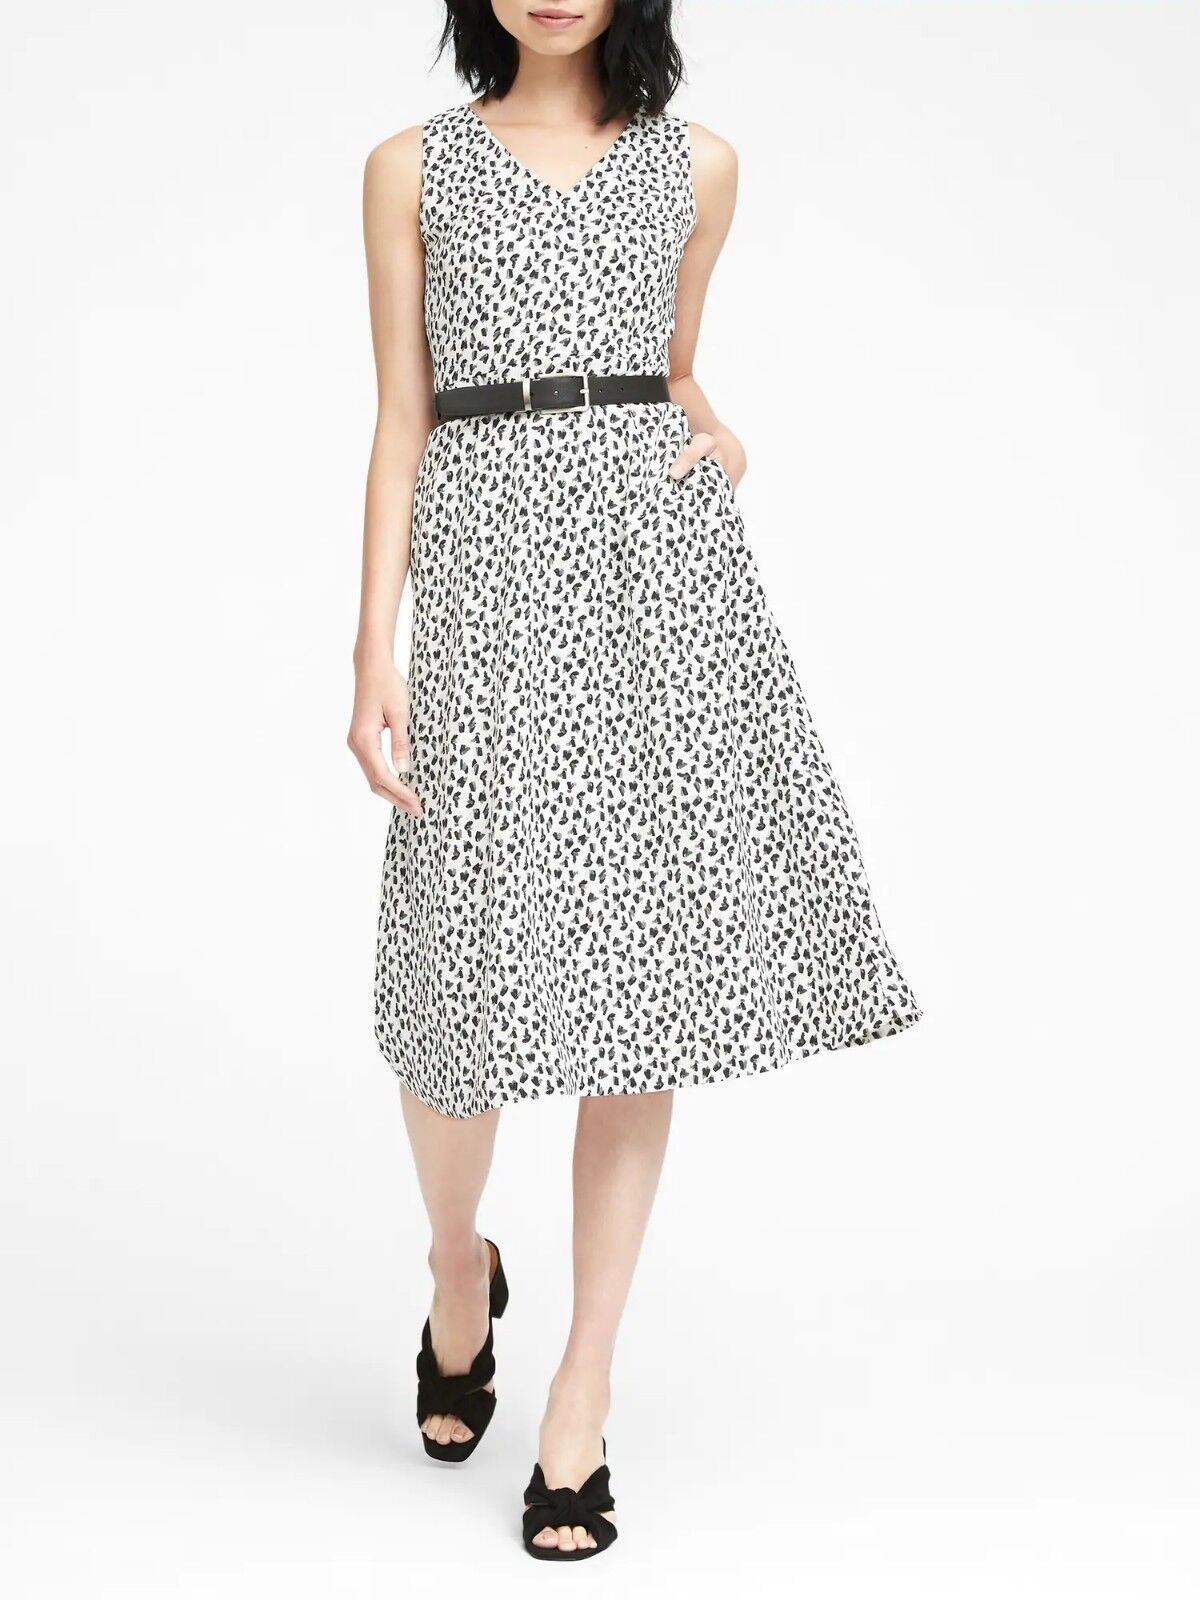 Banana Republic Print Midi Fit-and-Flare Dress,Weiß schwarz SZ 16   E1128